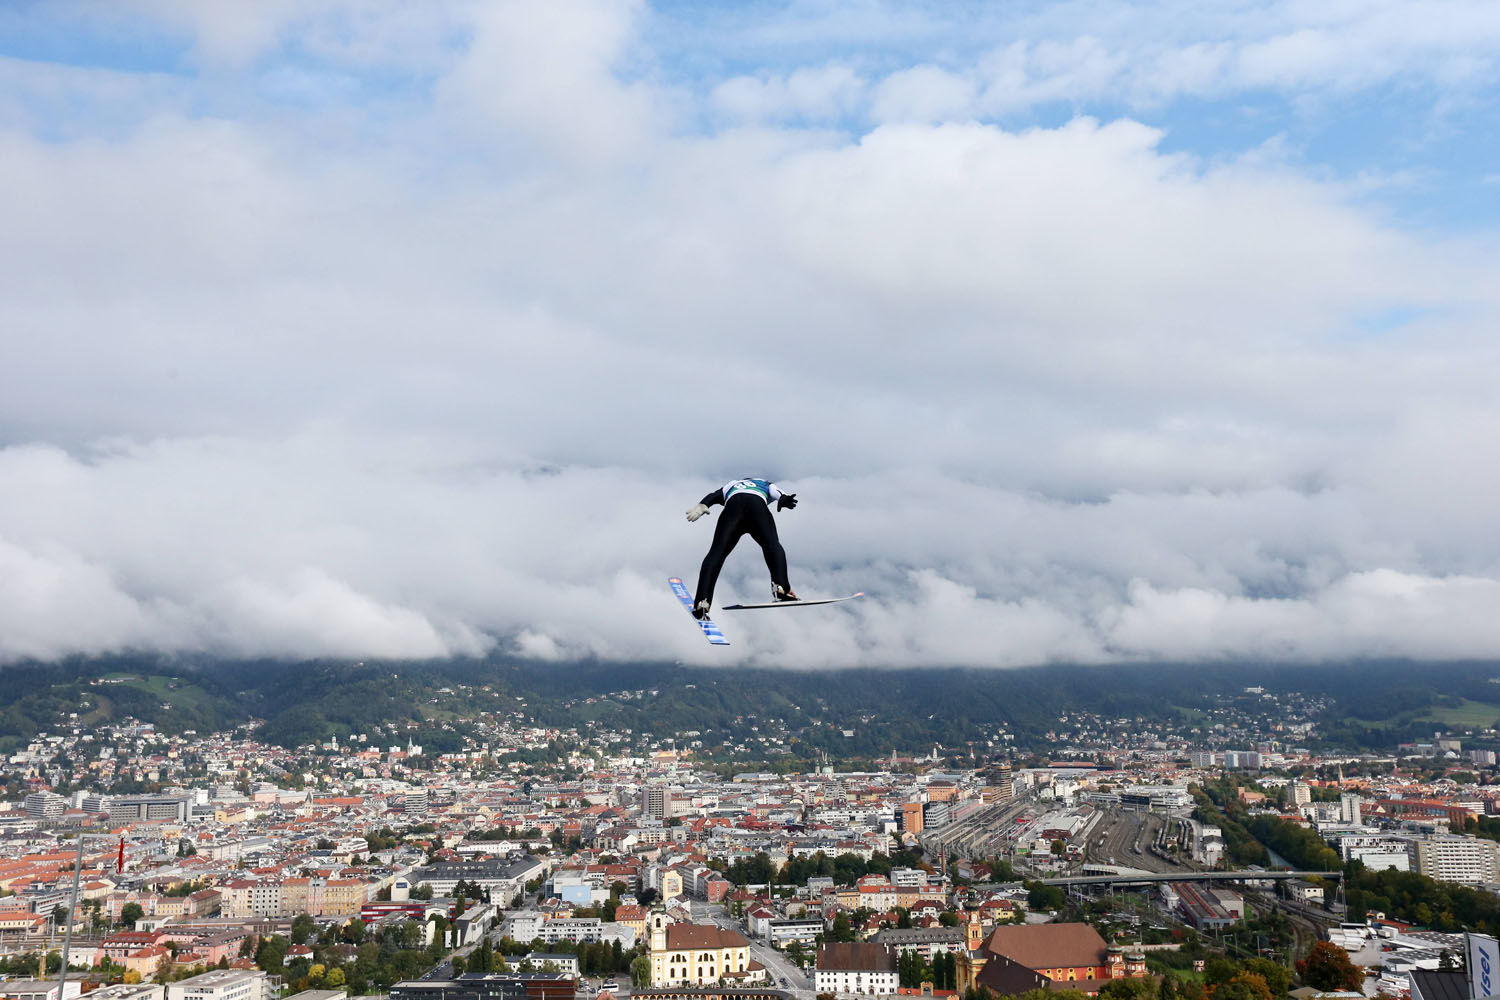 Oct. 6, 2013. Manuel Fettner going off a ski jump at the Ski Nordic AUT State Championships in Innsbruck, Austria.